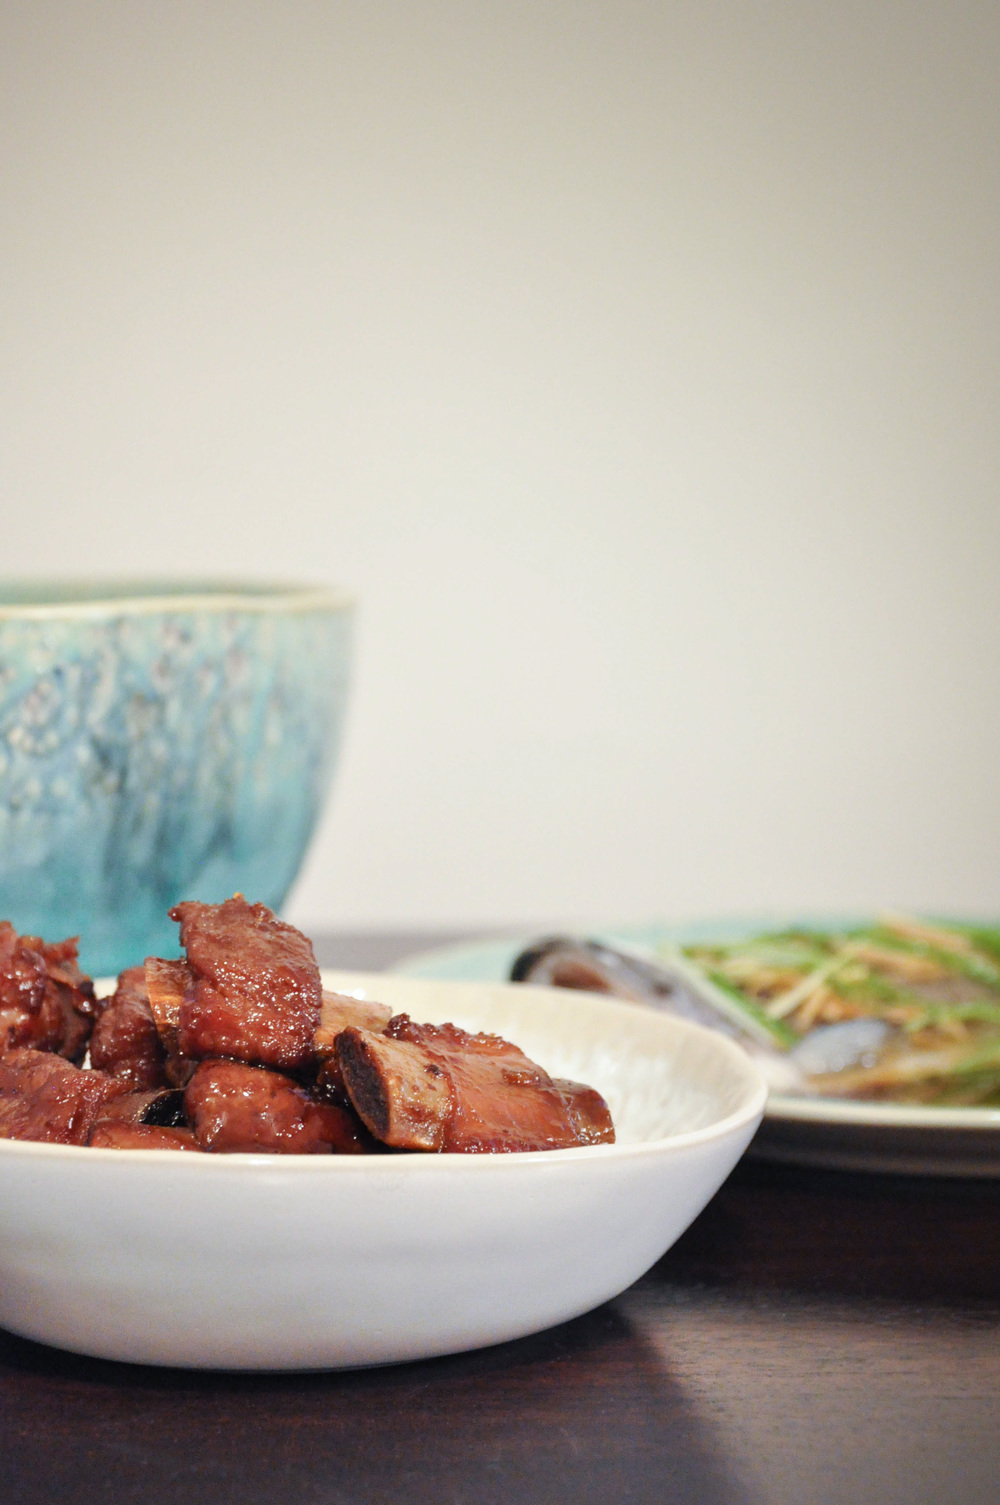 Red Braised Pork Riblets | O&O Eats